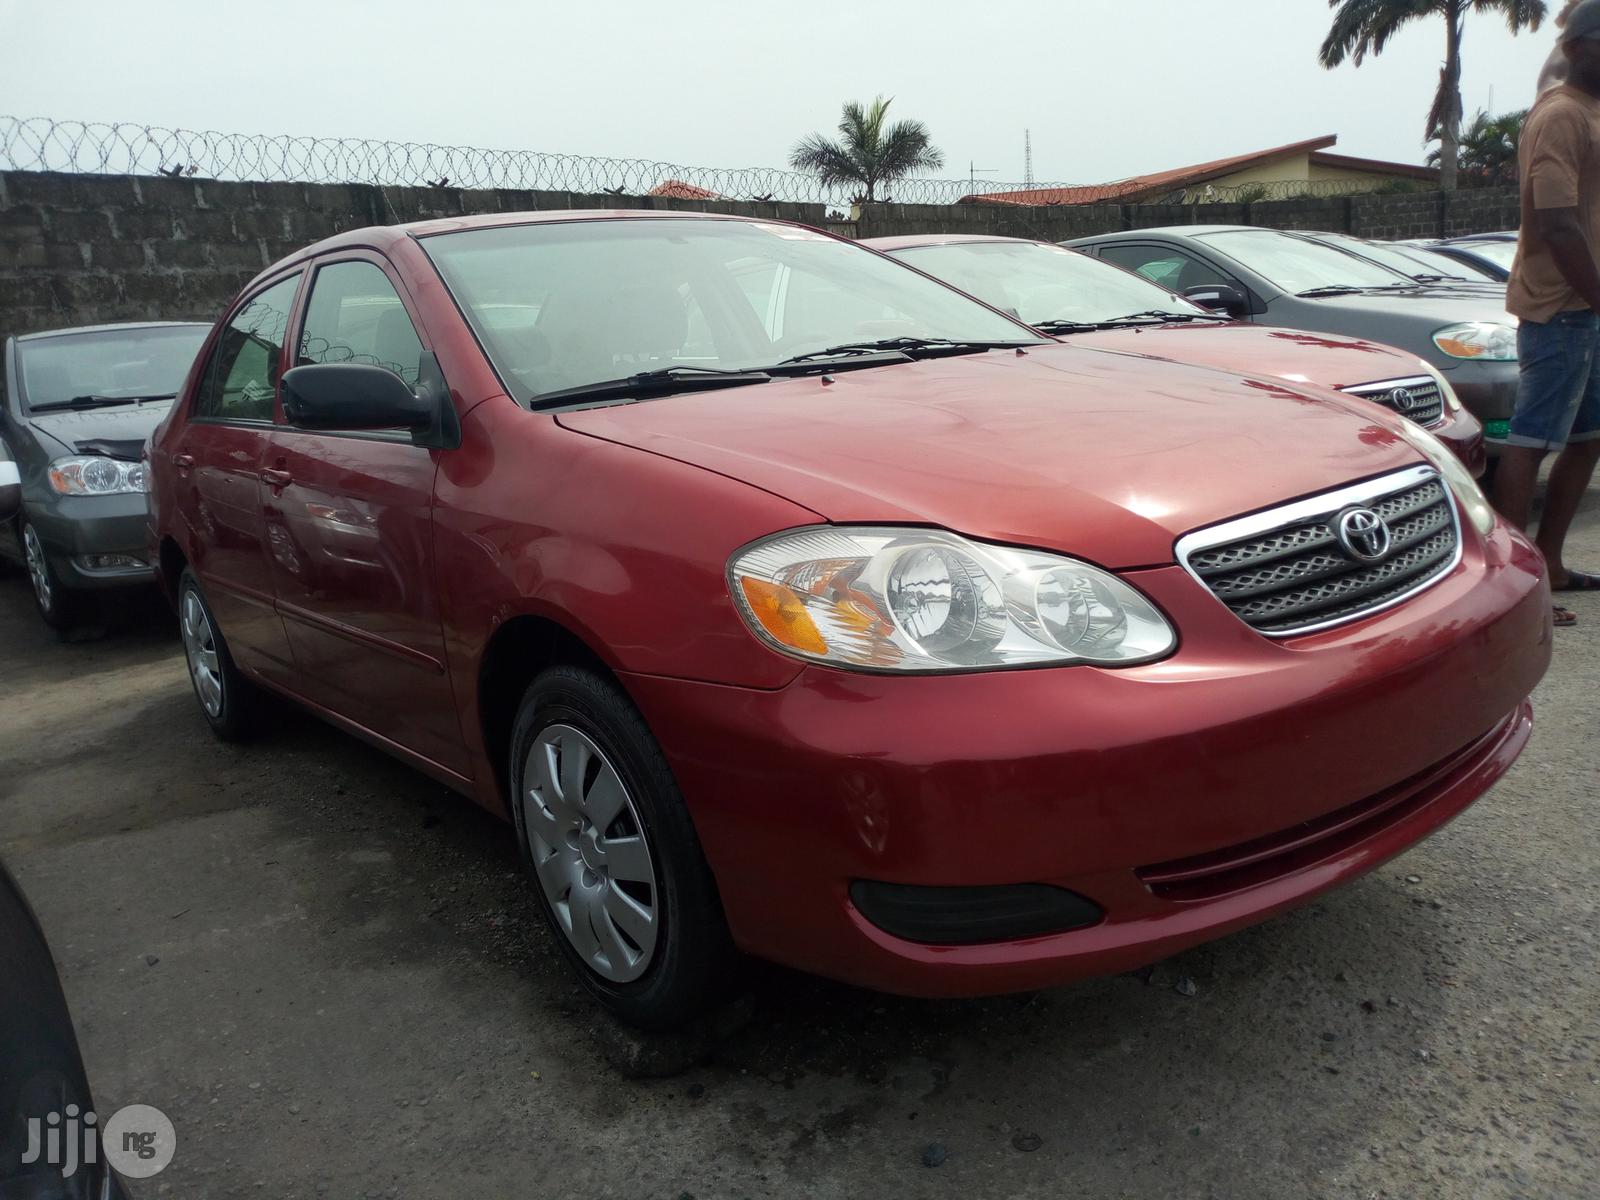 Toyota Corolla 2007 Red | Cars for sale in Apapa, Lagos State, Nigeria